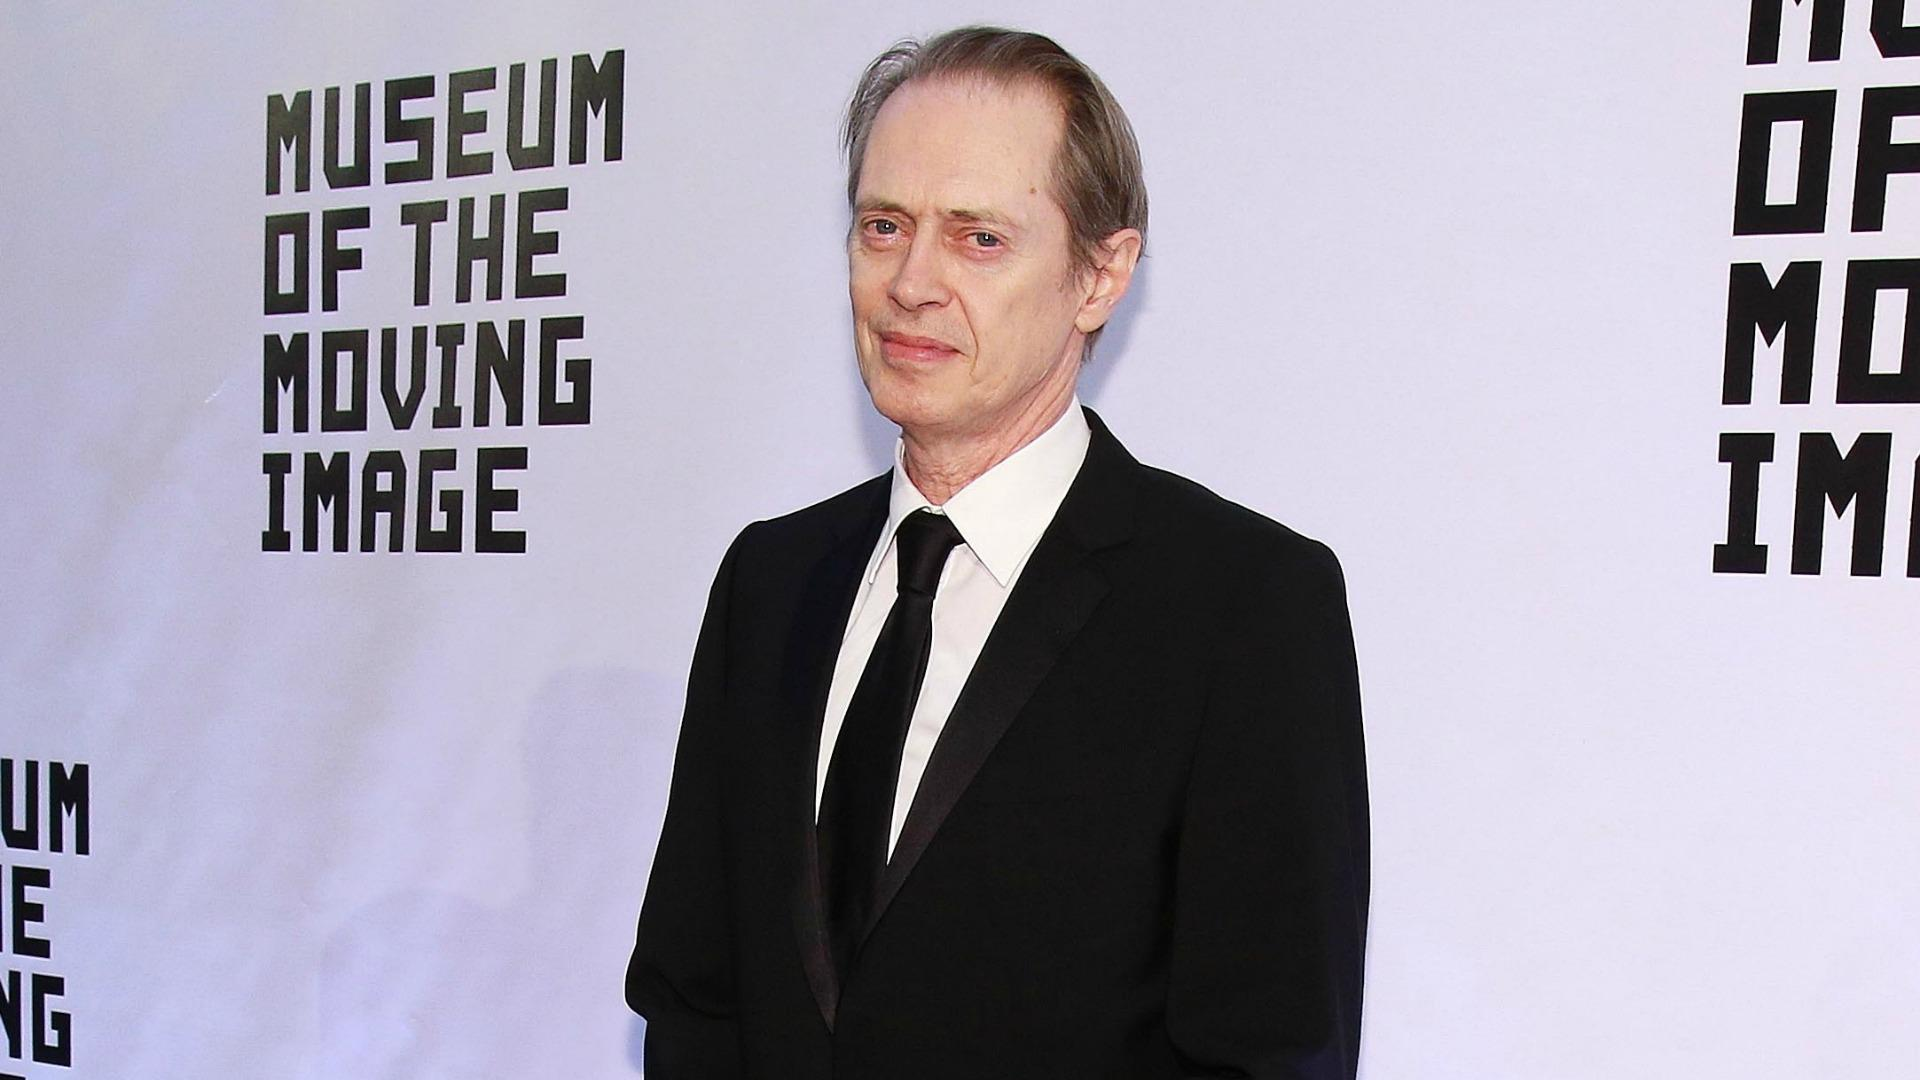 Steve Buscemi Hd Wallpaper